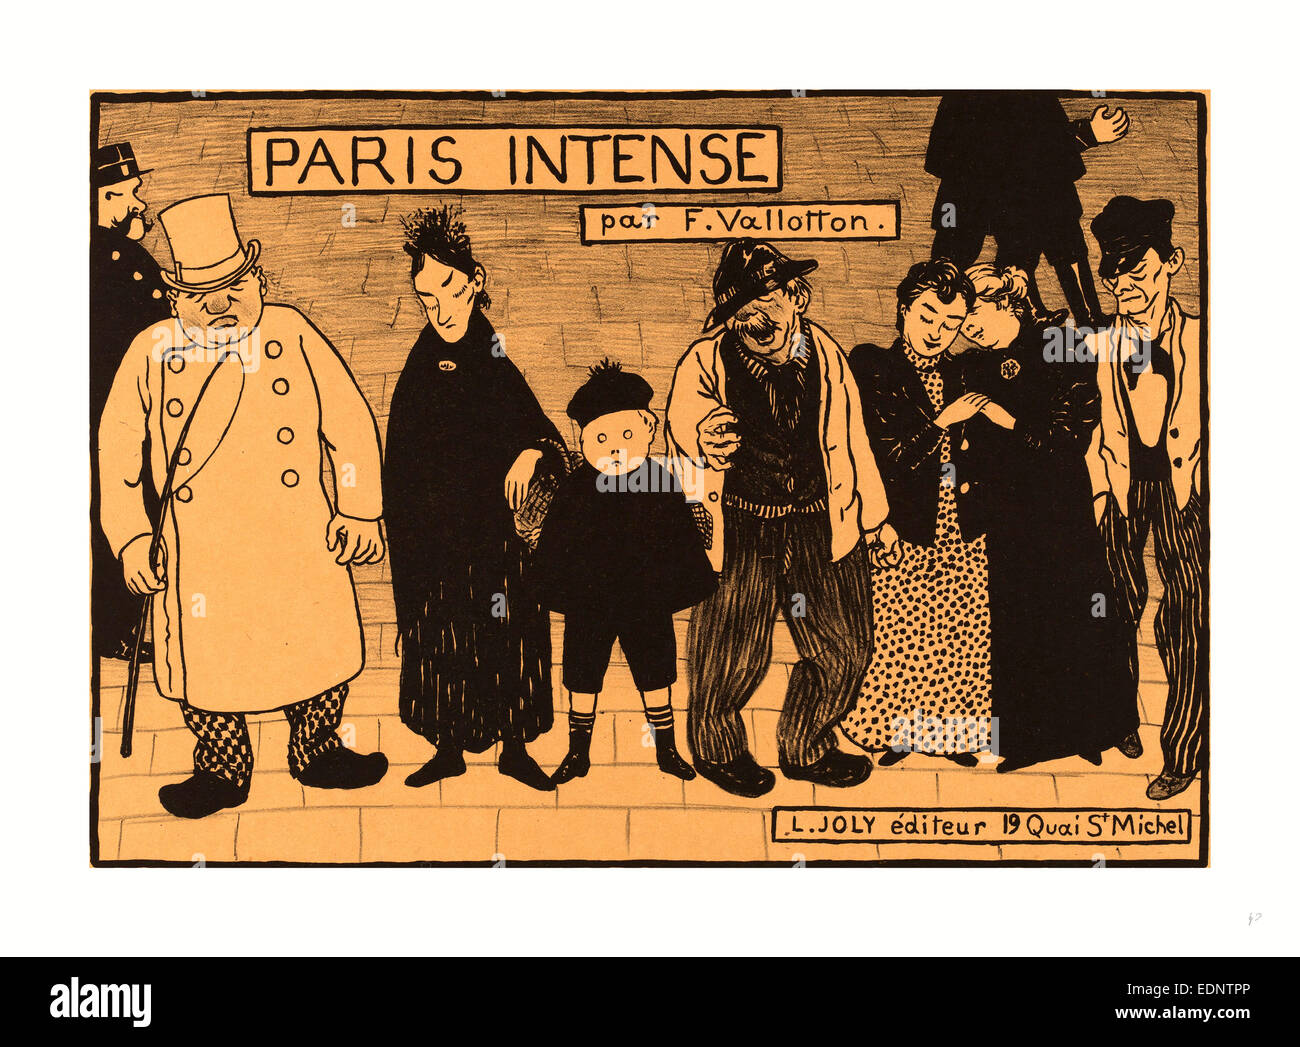 Flix Vallotton, Frontispiece from Paris Intense, Swiss, 1865 - 1925, 1894, lithograph (zinc) on yellow wove paper - Stock Image